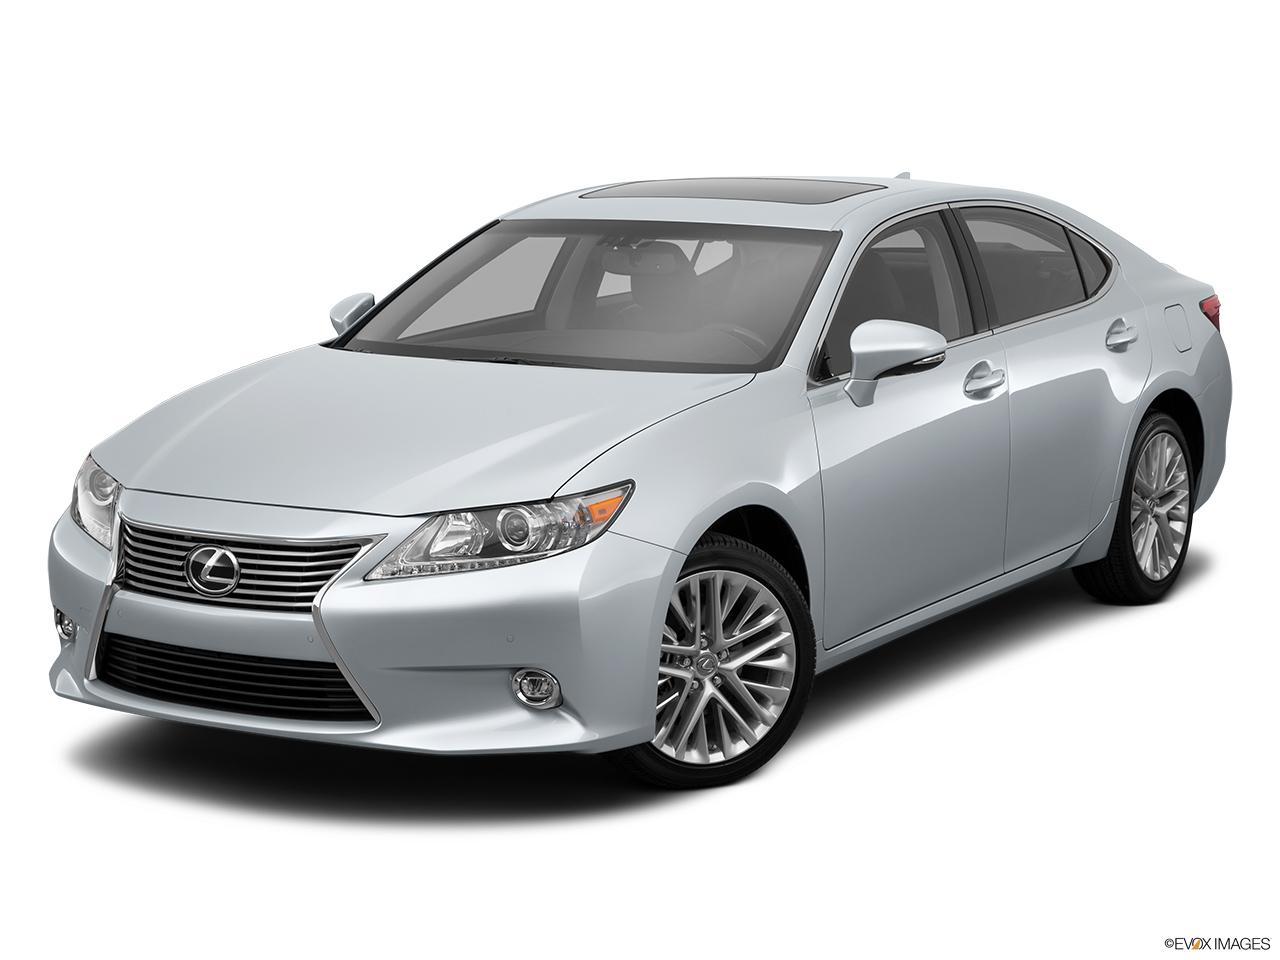 2015 lexus es 350 sedan. Black Bedroom Furniture Sets. Home Design Ideas